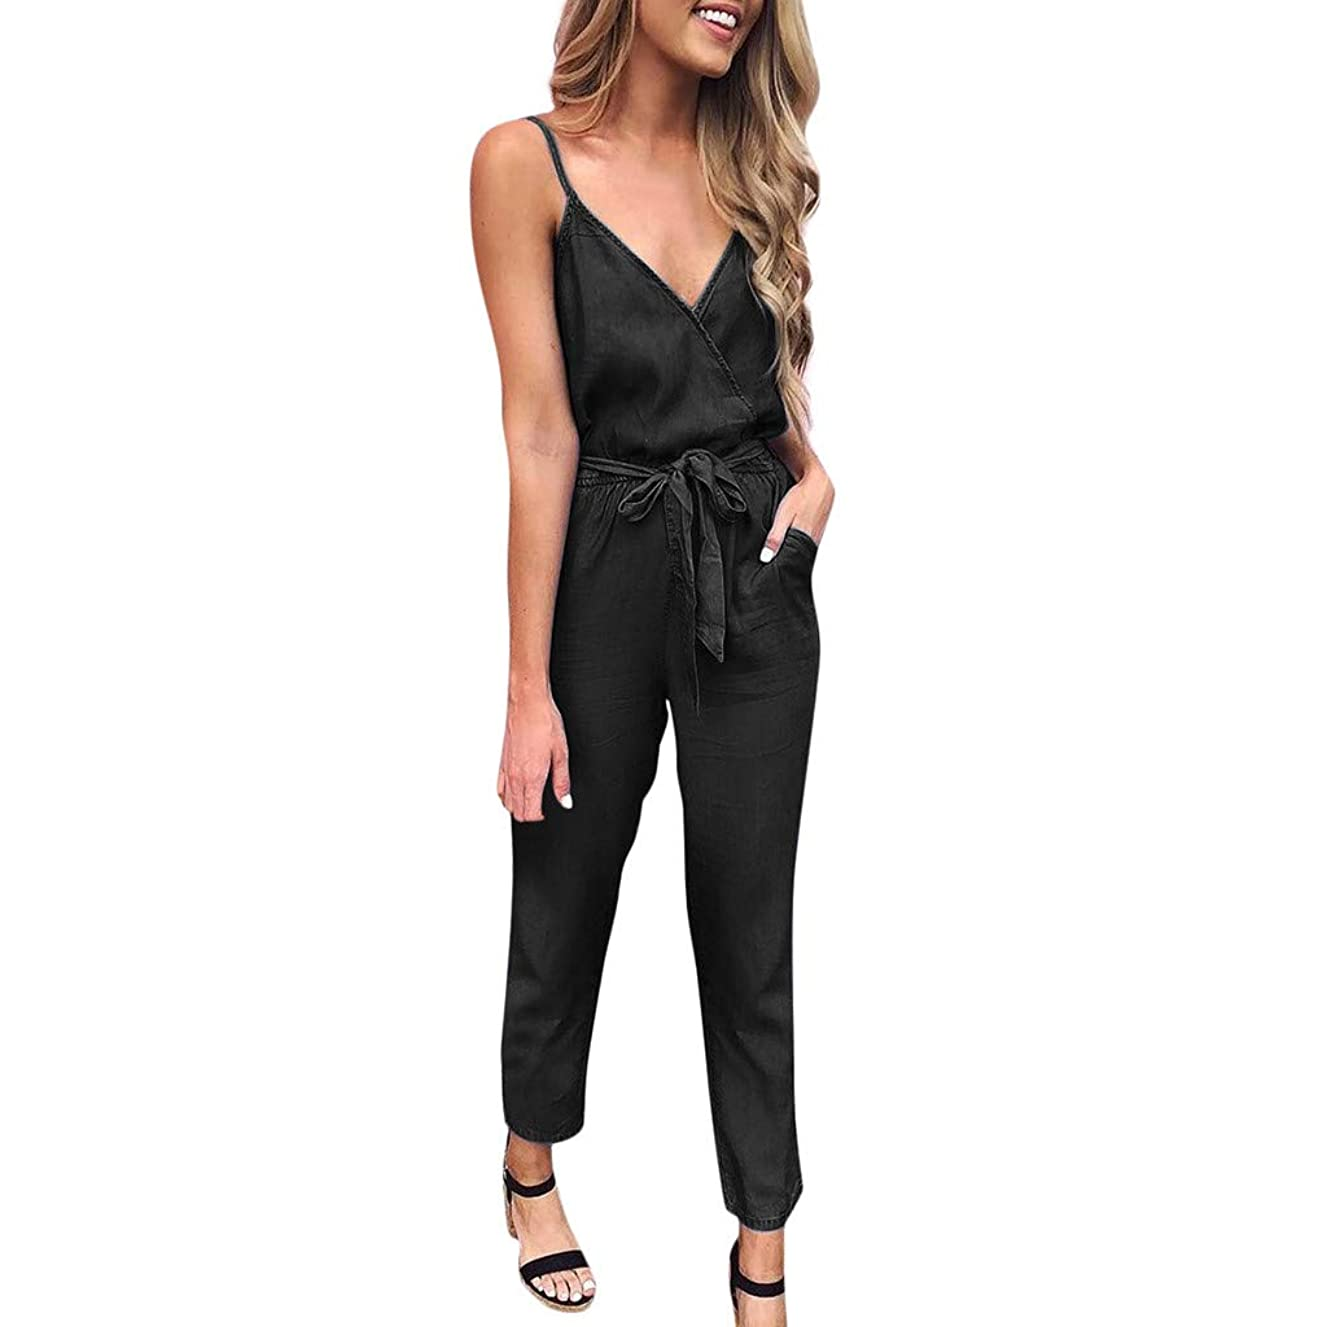 MURTIAL Women's Jumpsuit Summer Spaghetti Strap Wrap Top Tie Waist Casual Rompers